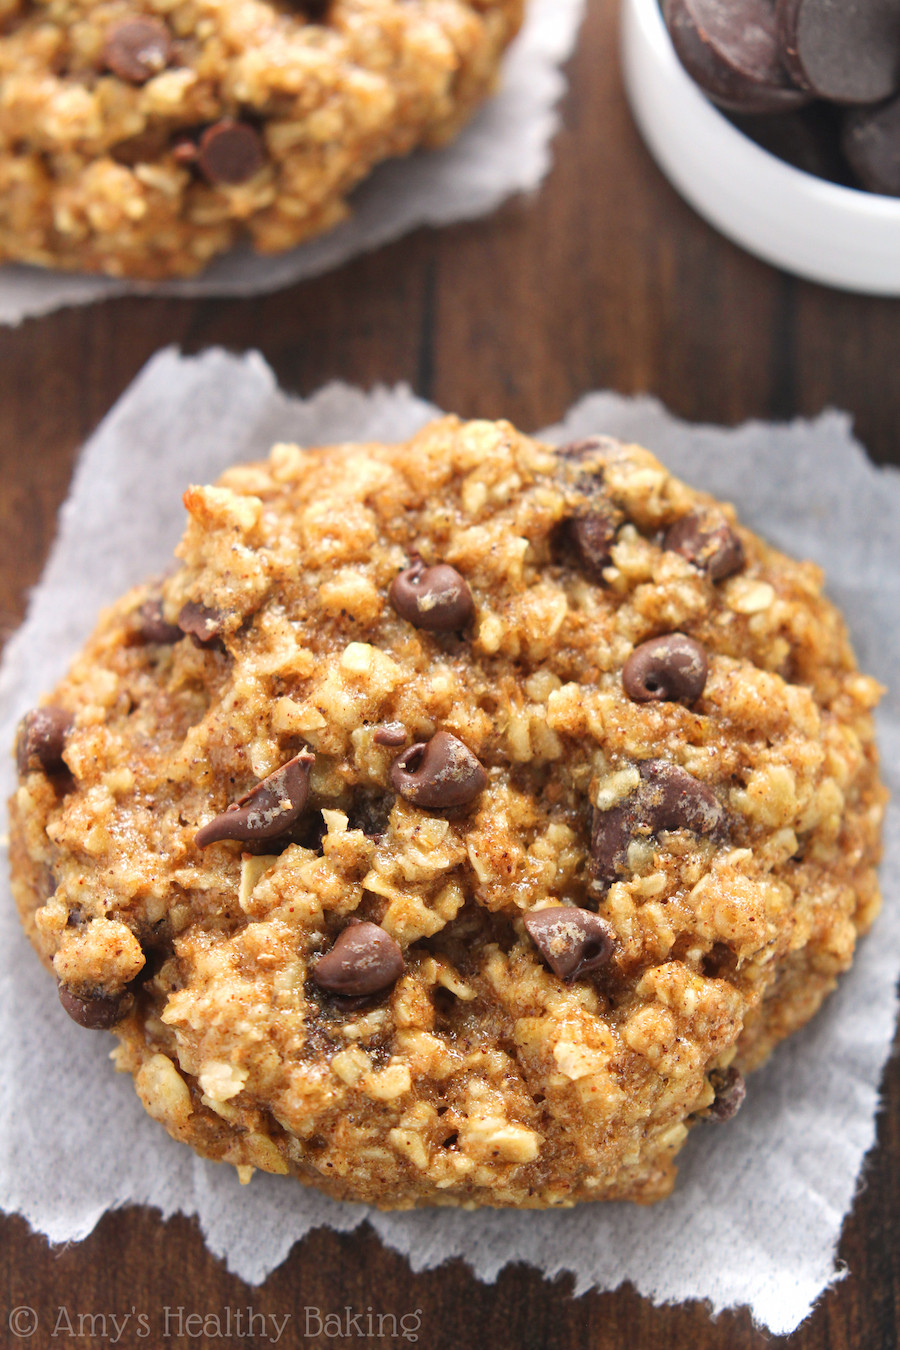 Healthy Oatmeal Chocolate Chip Cookies Recipe  Chocolate Chip Banana Bread Oatmeal Cookies